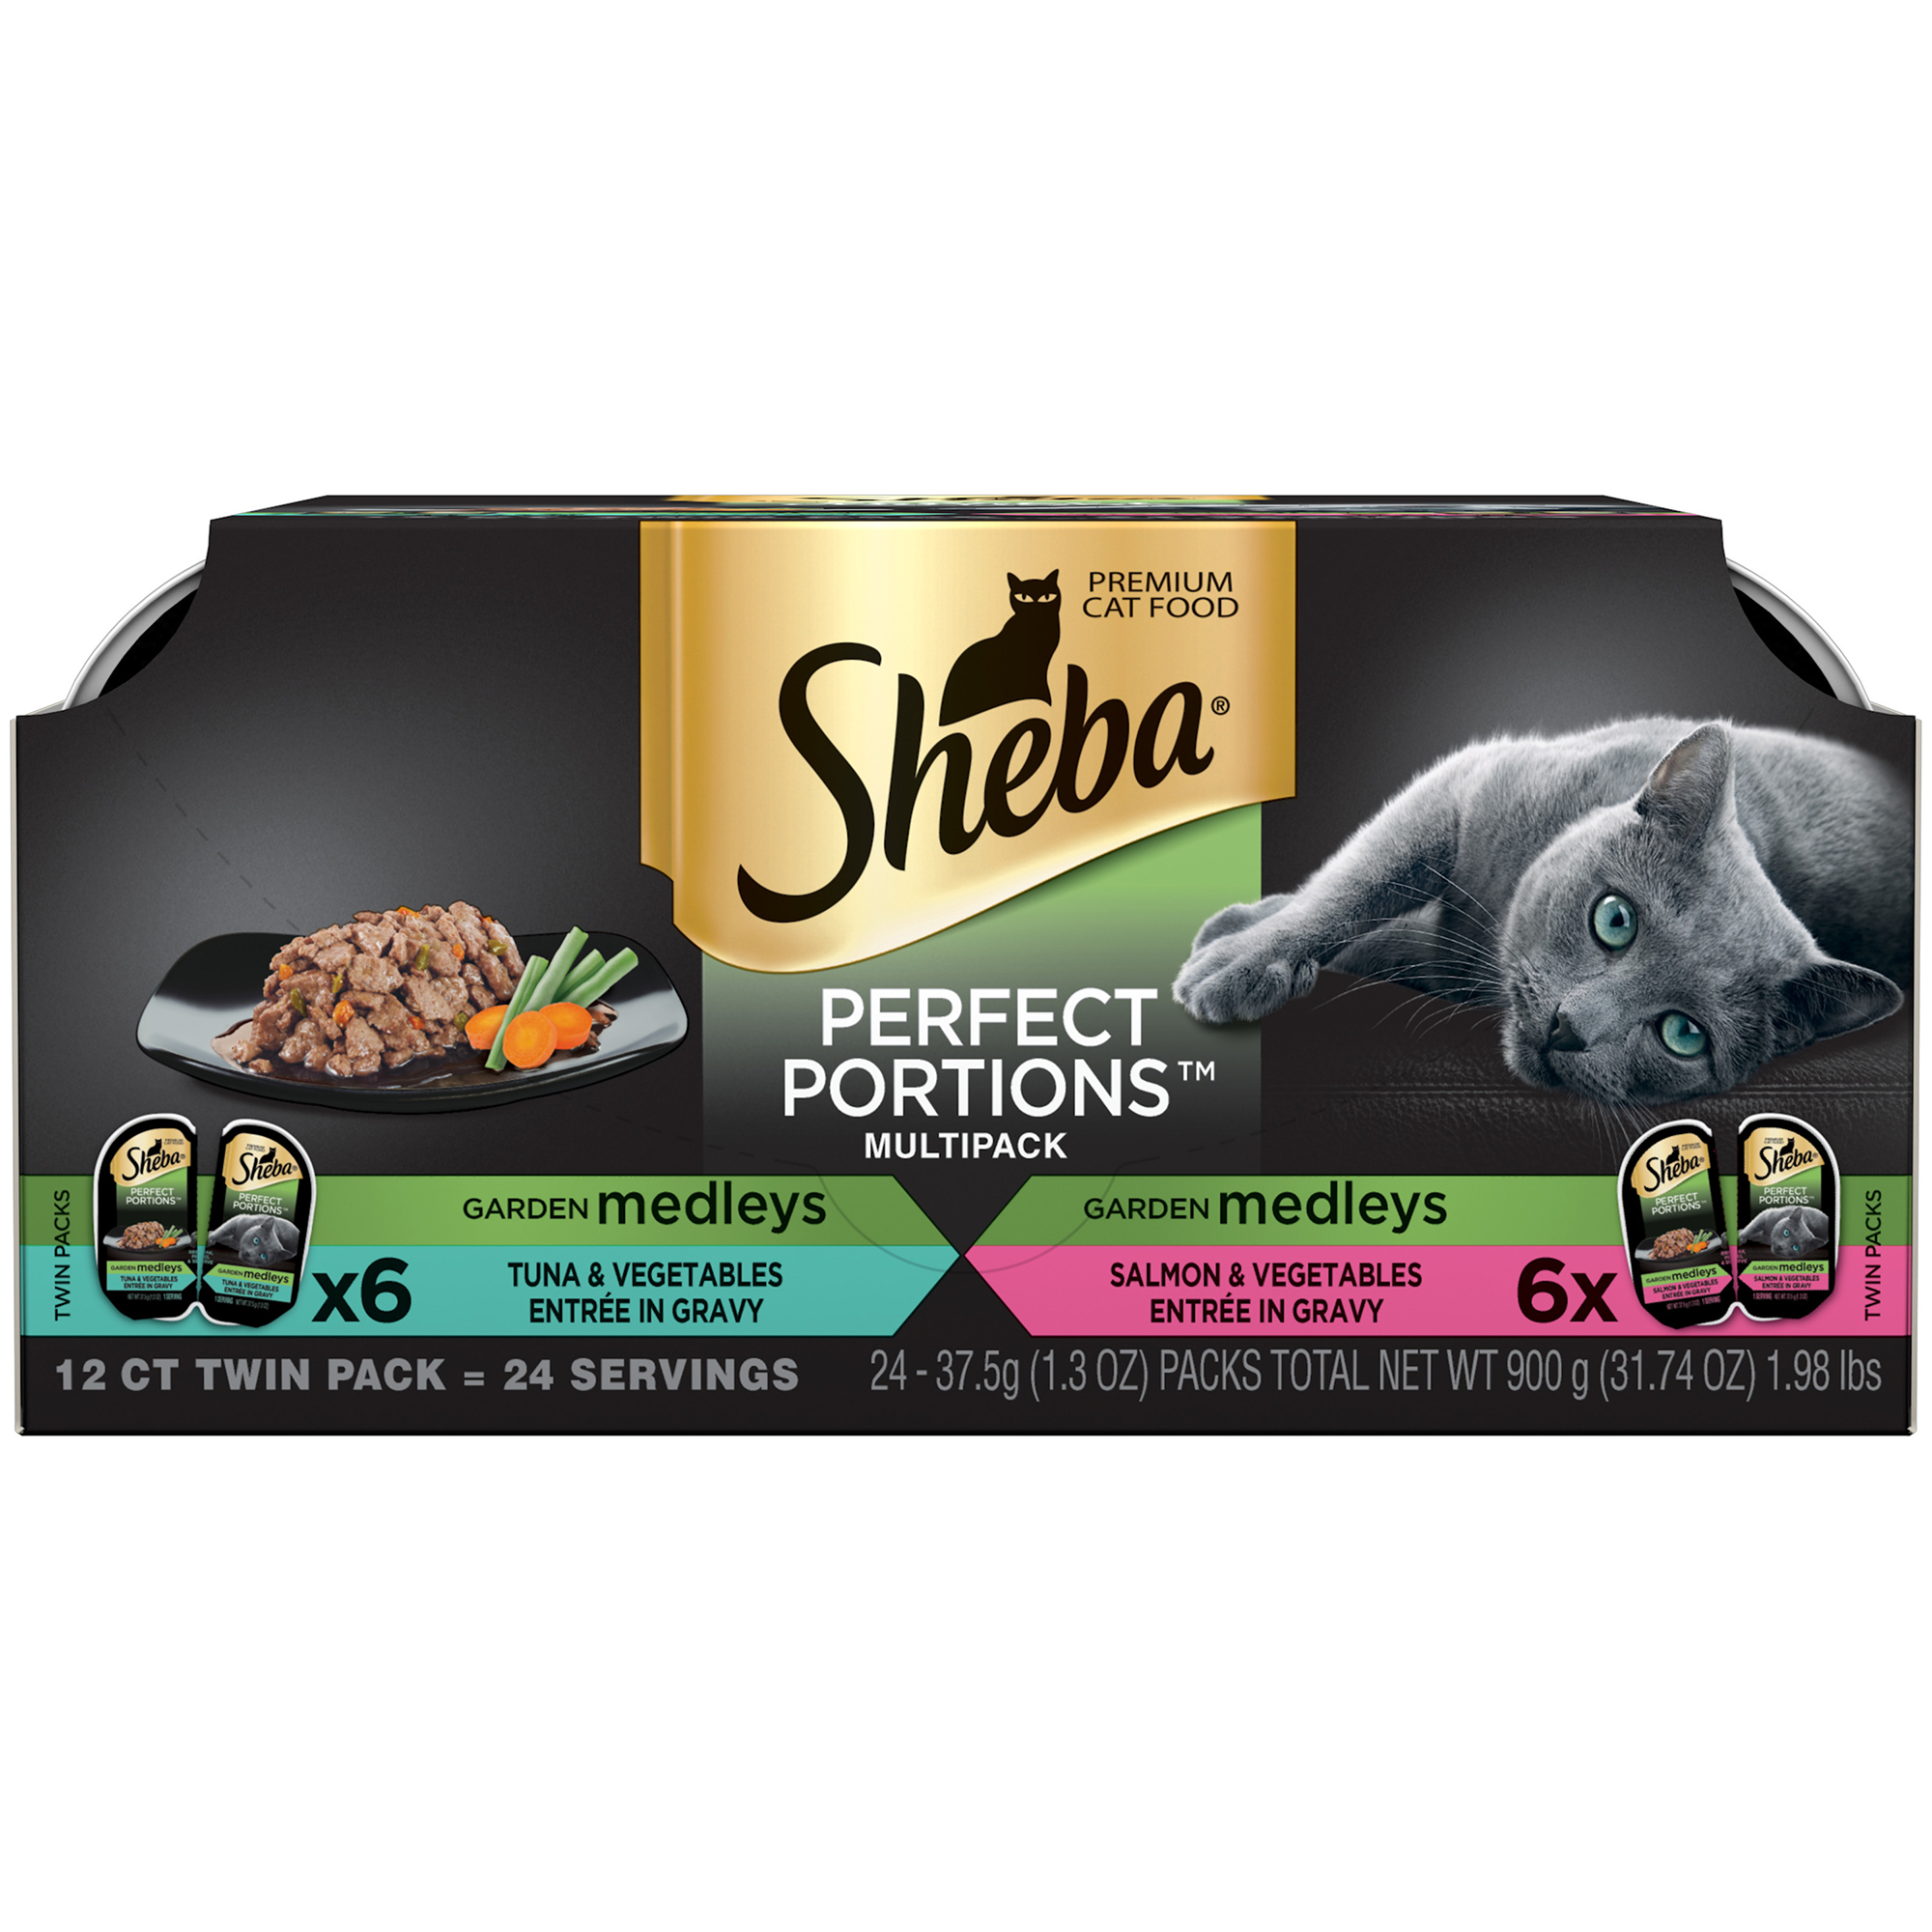 Sheba Perfect Portions Garden Medleys Wet Cat Food, Tuna And Vegetables & Salmon And Vegetables Multipack, 2.6 Oz (12 Twin Packs)